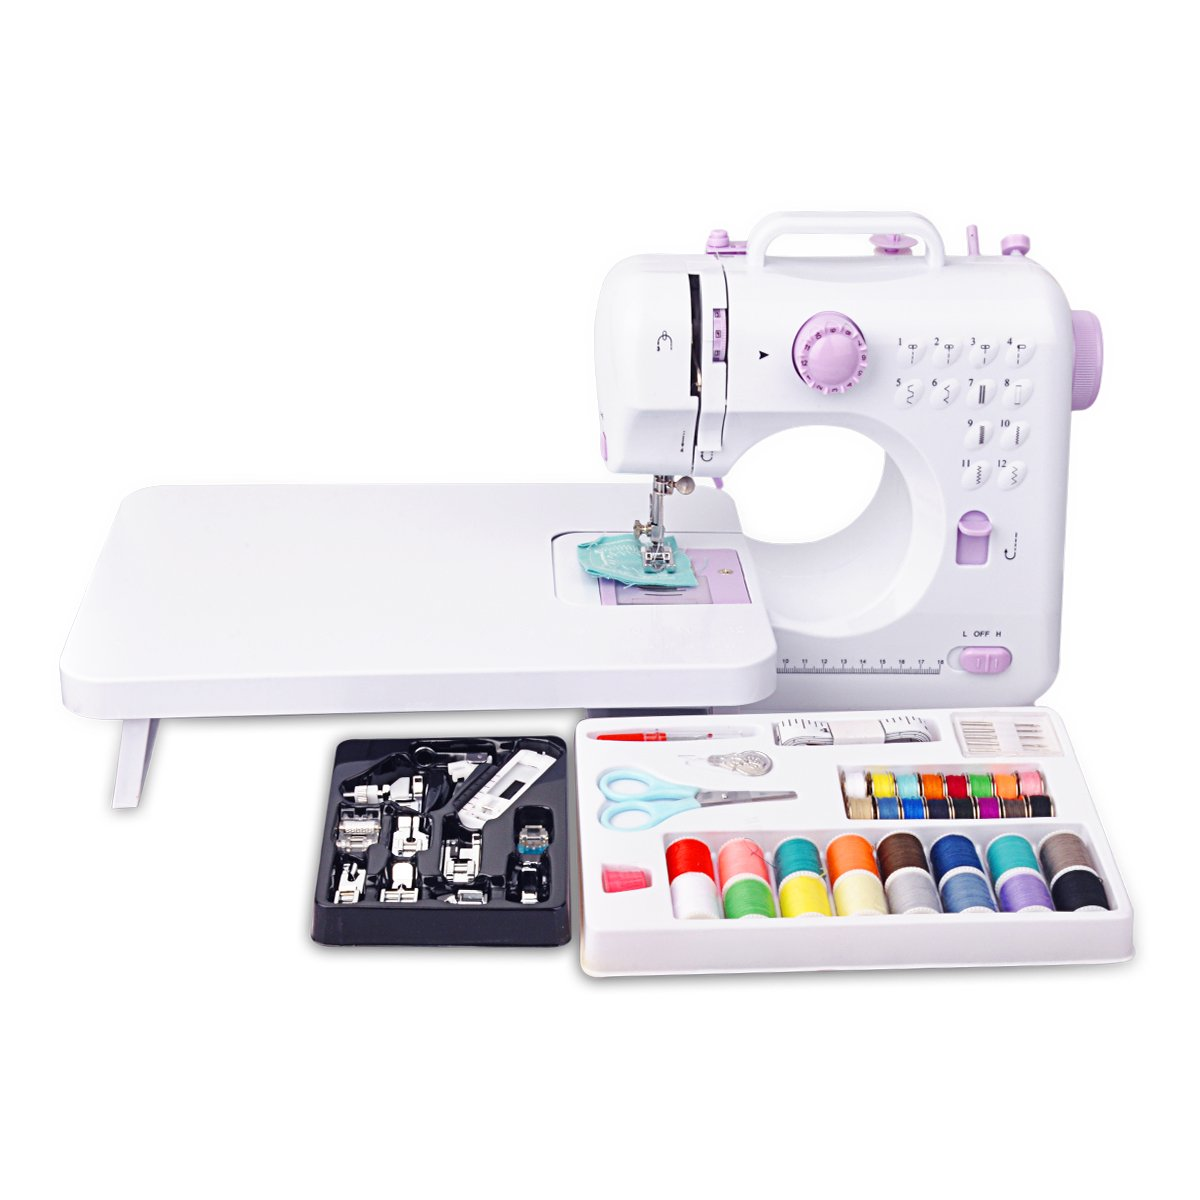 Congerate 12 Stitches Mini Electric Sewing Machine Multifunction Household Double Thread Double Speed with 11pcs Presser Foot Set And 42-in-1 Sewing Tools Kit Needlework Box Set And Extension Table CongerateDirect VJ-SW-0003